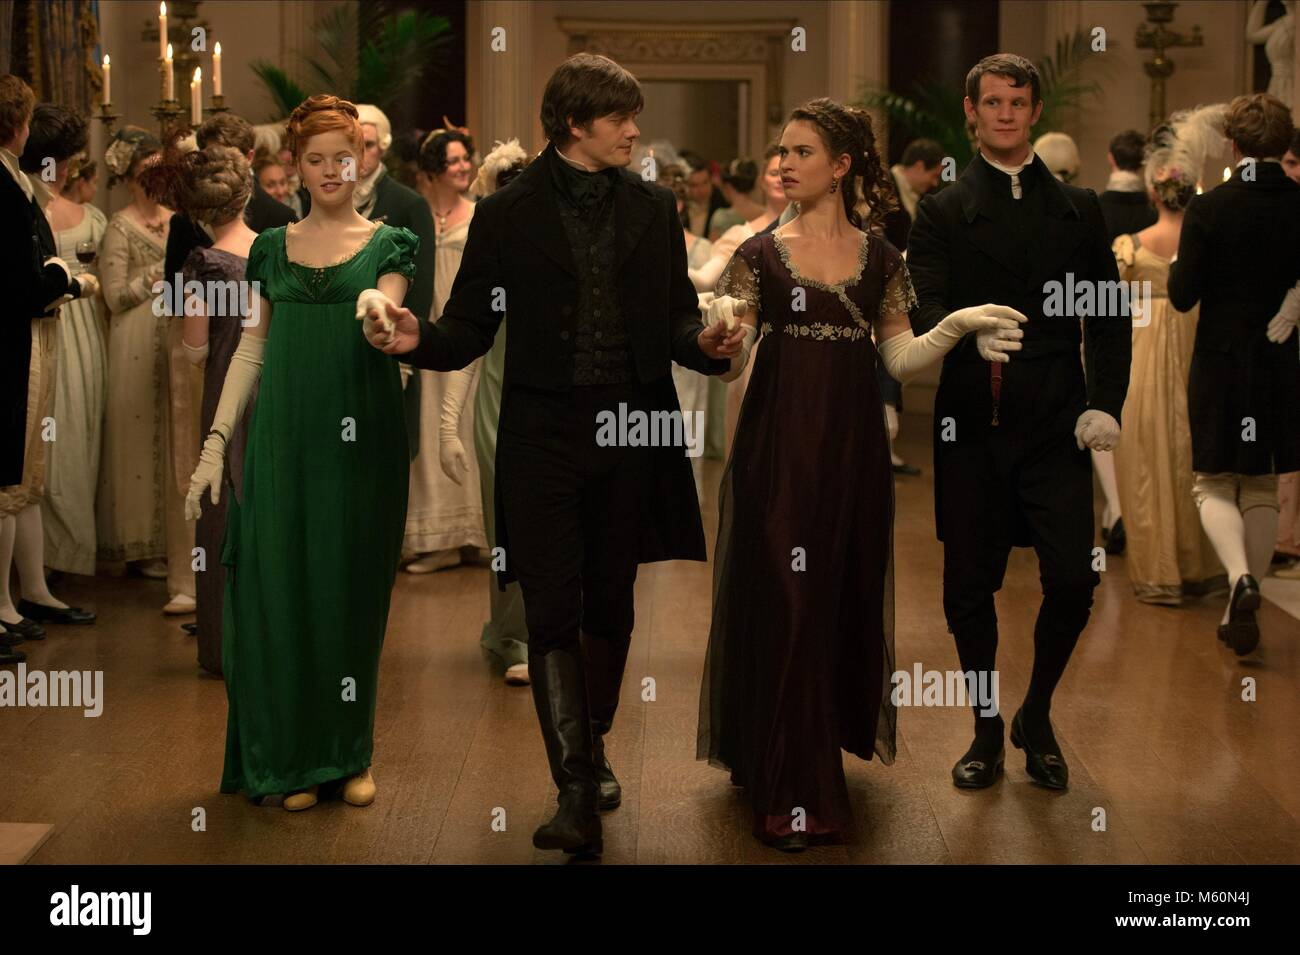 ELLIE BAMBER SAM RILEY LILY JAMES & MATT SMITH PRIDE AND PREJUDICE AND ZOMBIES (2016) - Stock Image